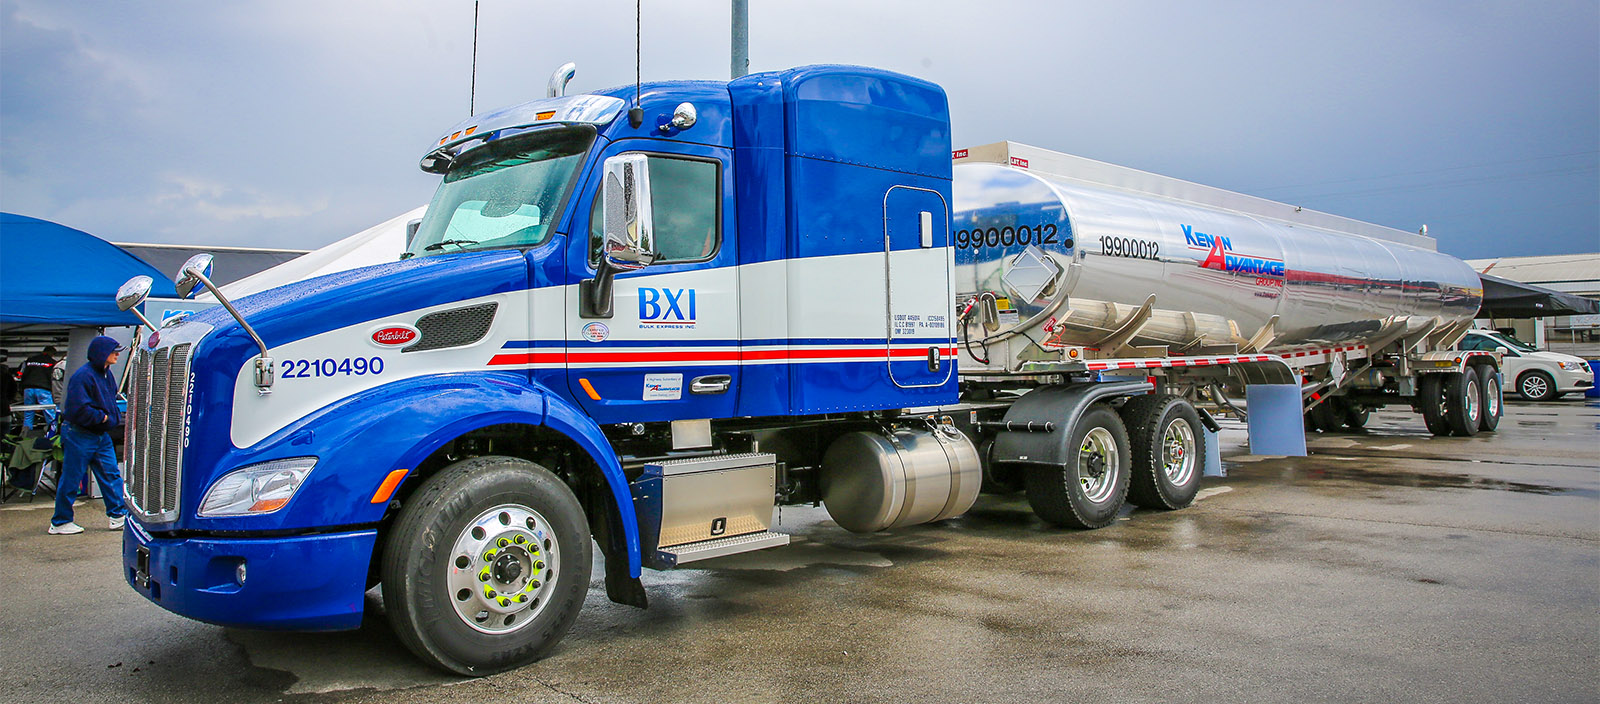 The Kenan Advantage Group is seeking commercial truck drivers including company drivers and owner–operators, mechanics and tank washers to join their growing team. (Photo credit: David Smith)